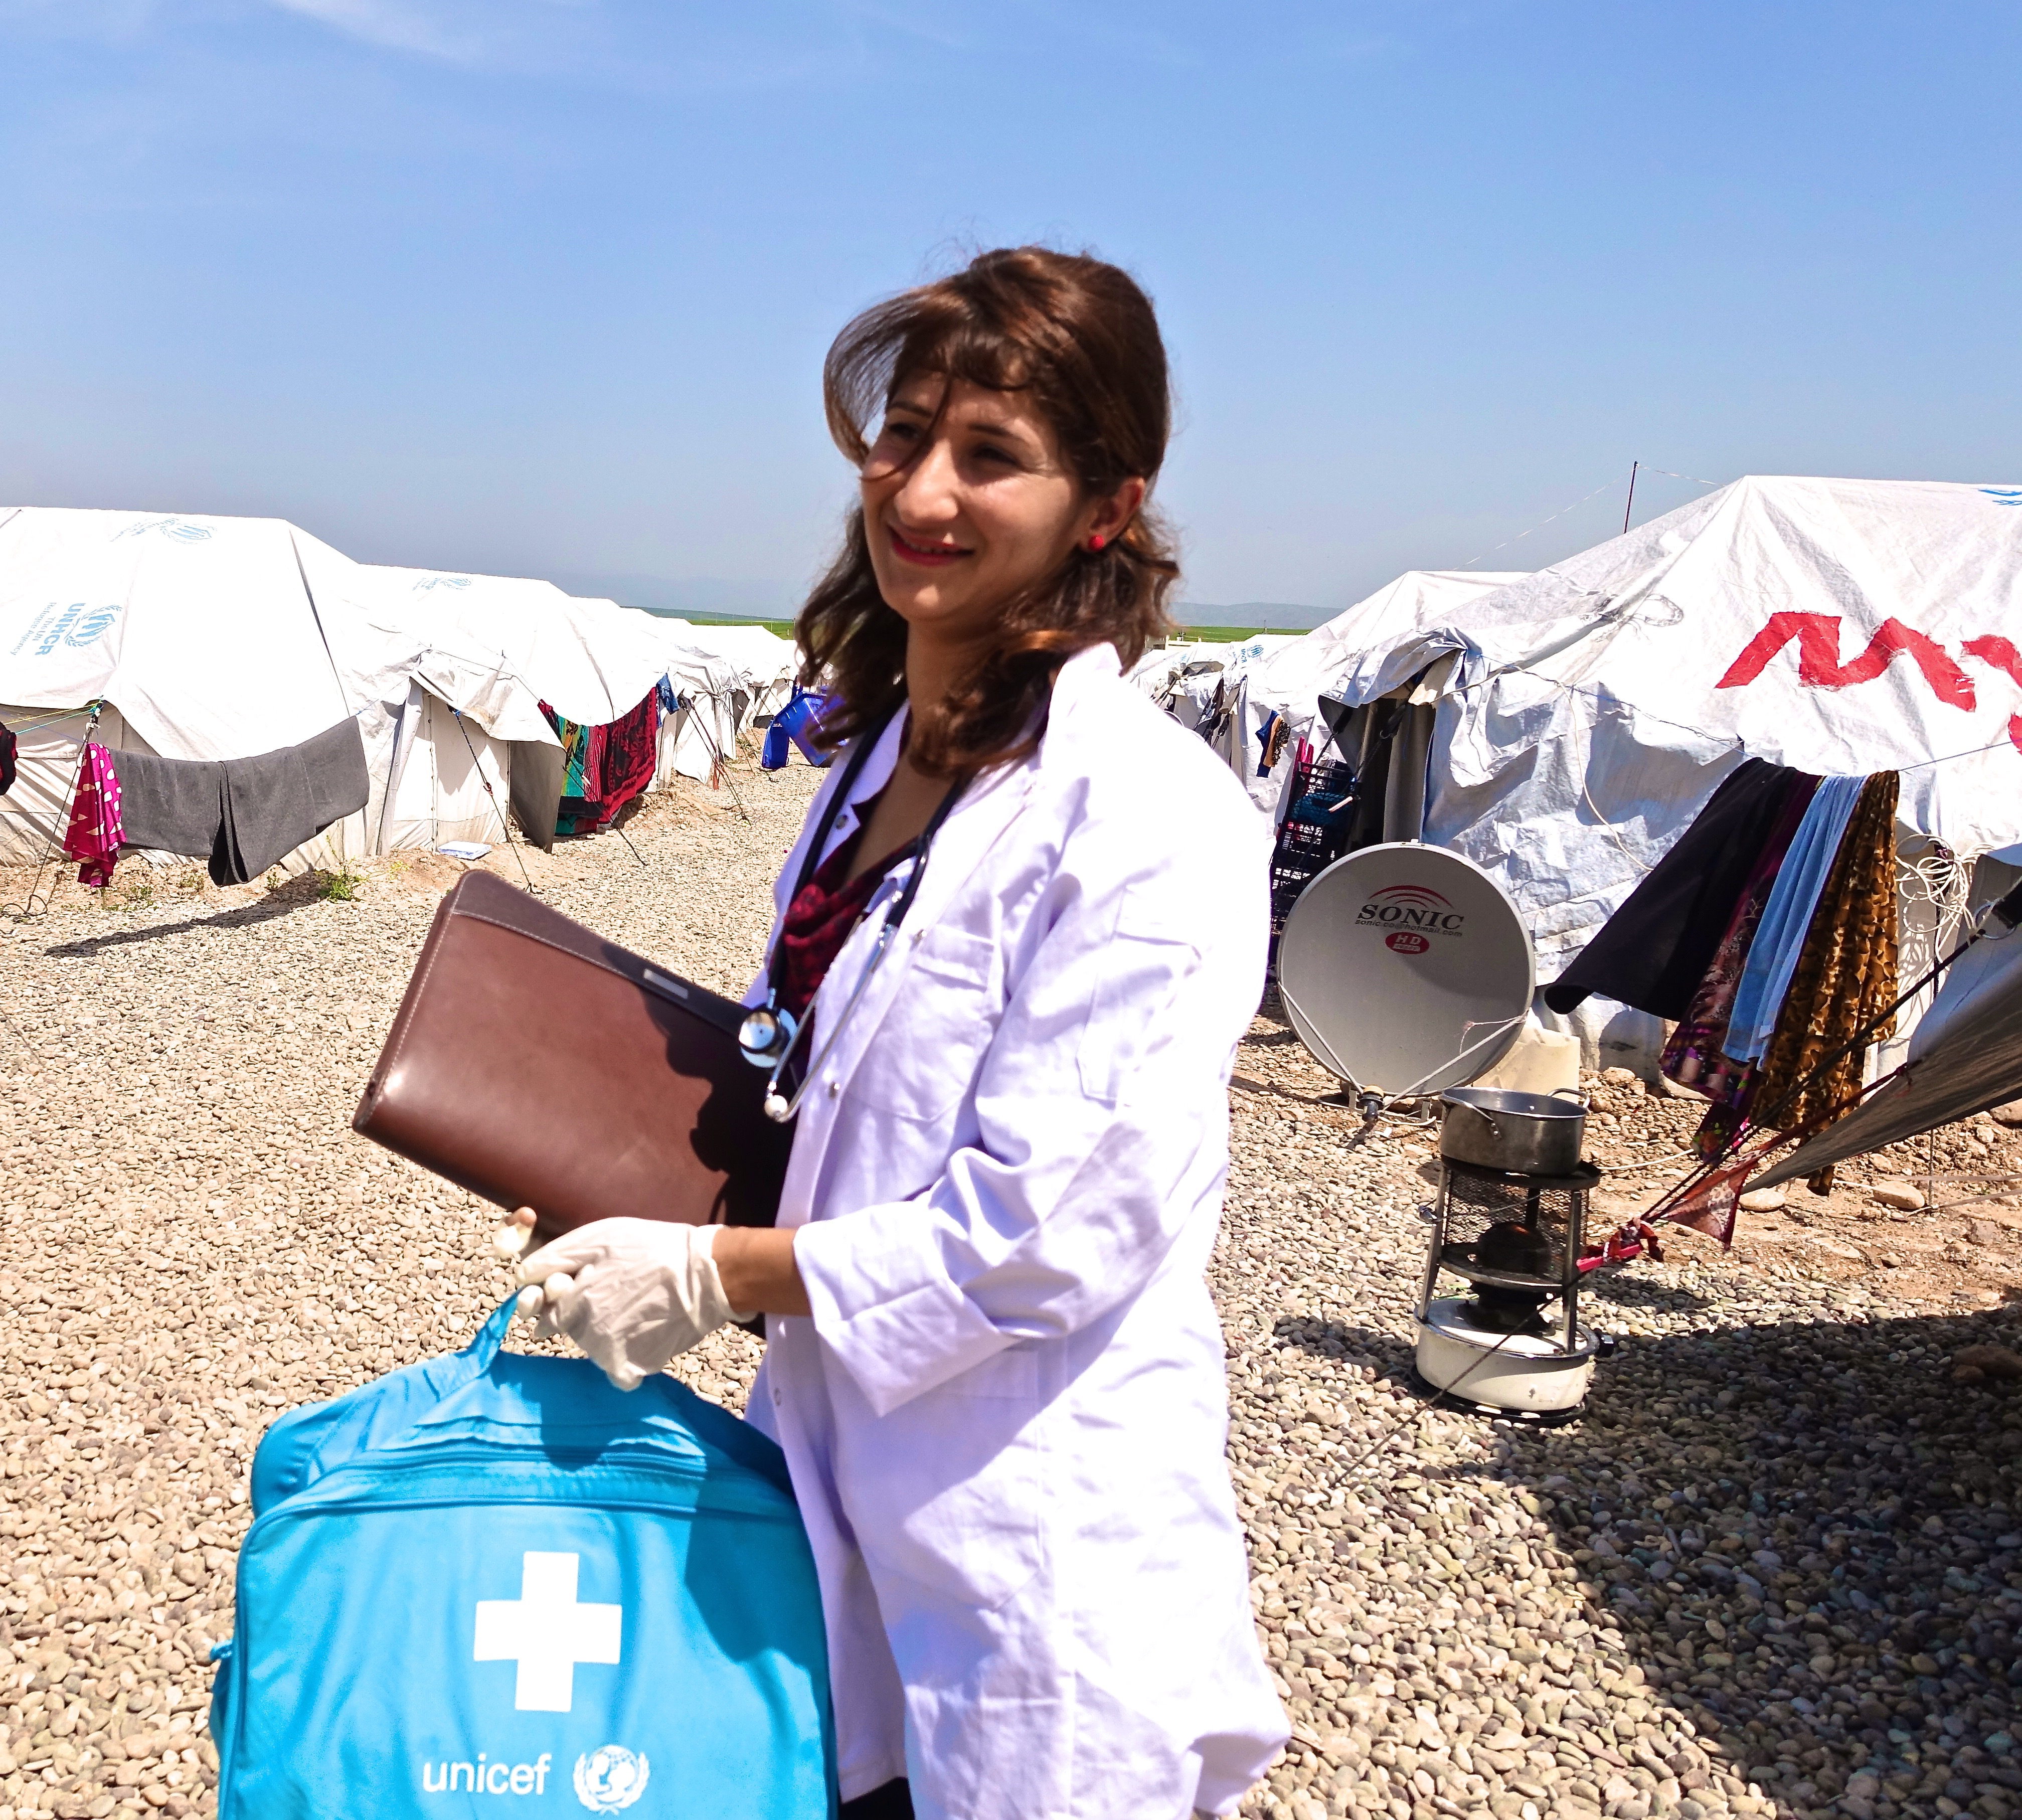 Janda stands in the camp, witht tents behind her. At the end of a long day, she is still smiling.